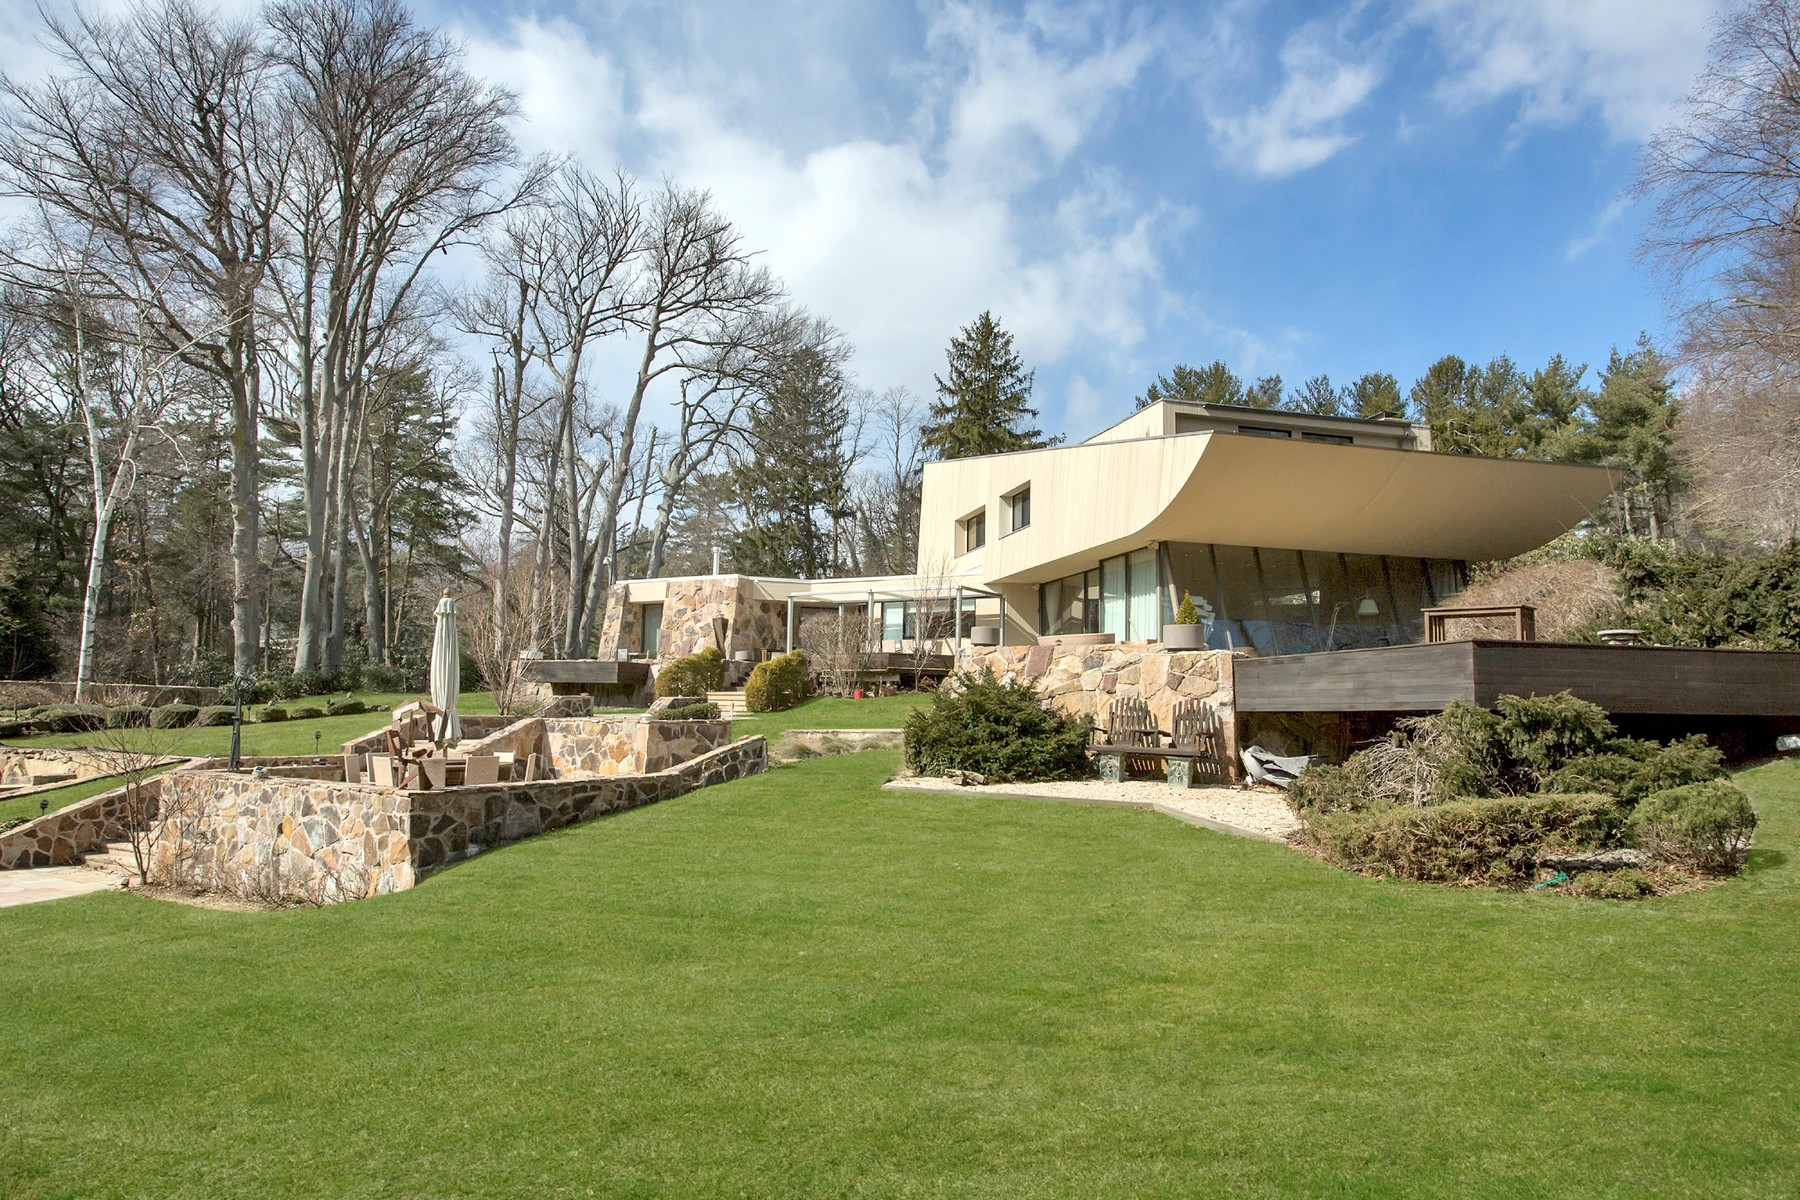 Villa per Vendita alle ore Contemporary 15 Horseshoe Rd Old Westbury, New York, 11568 Stati Uniti